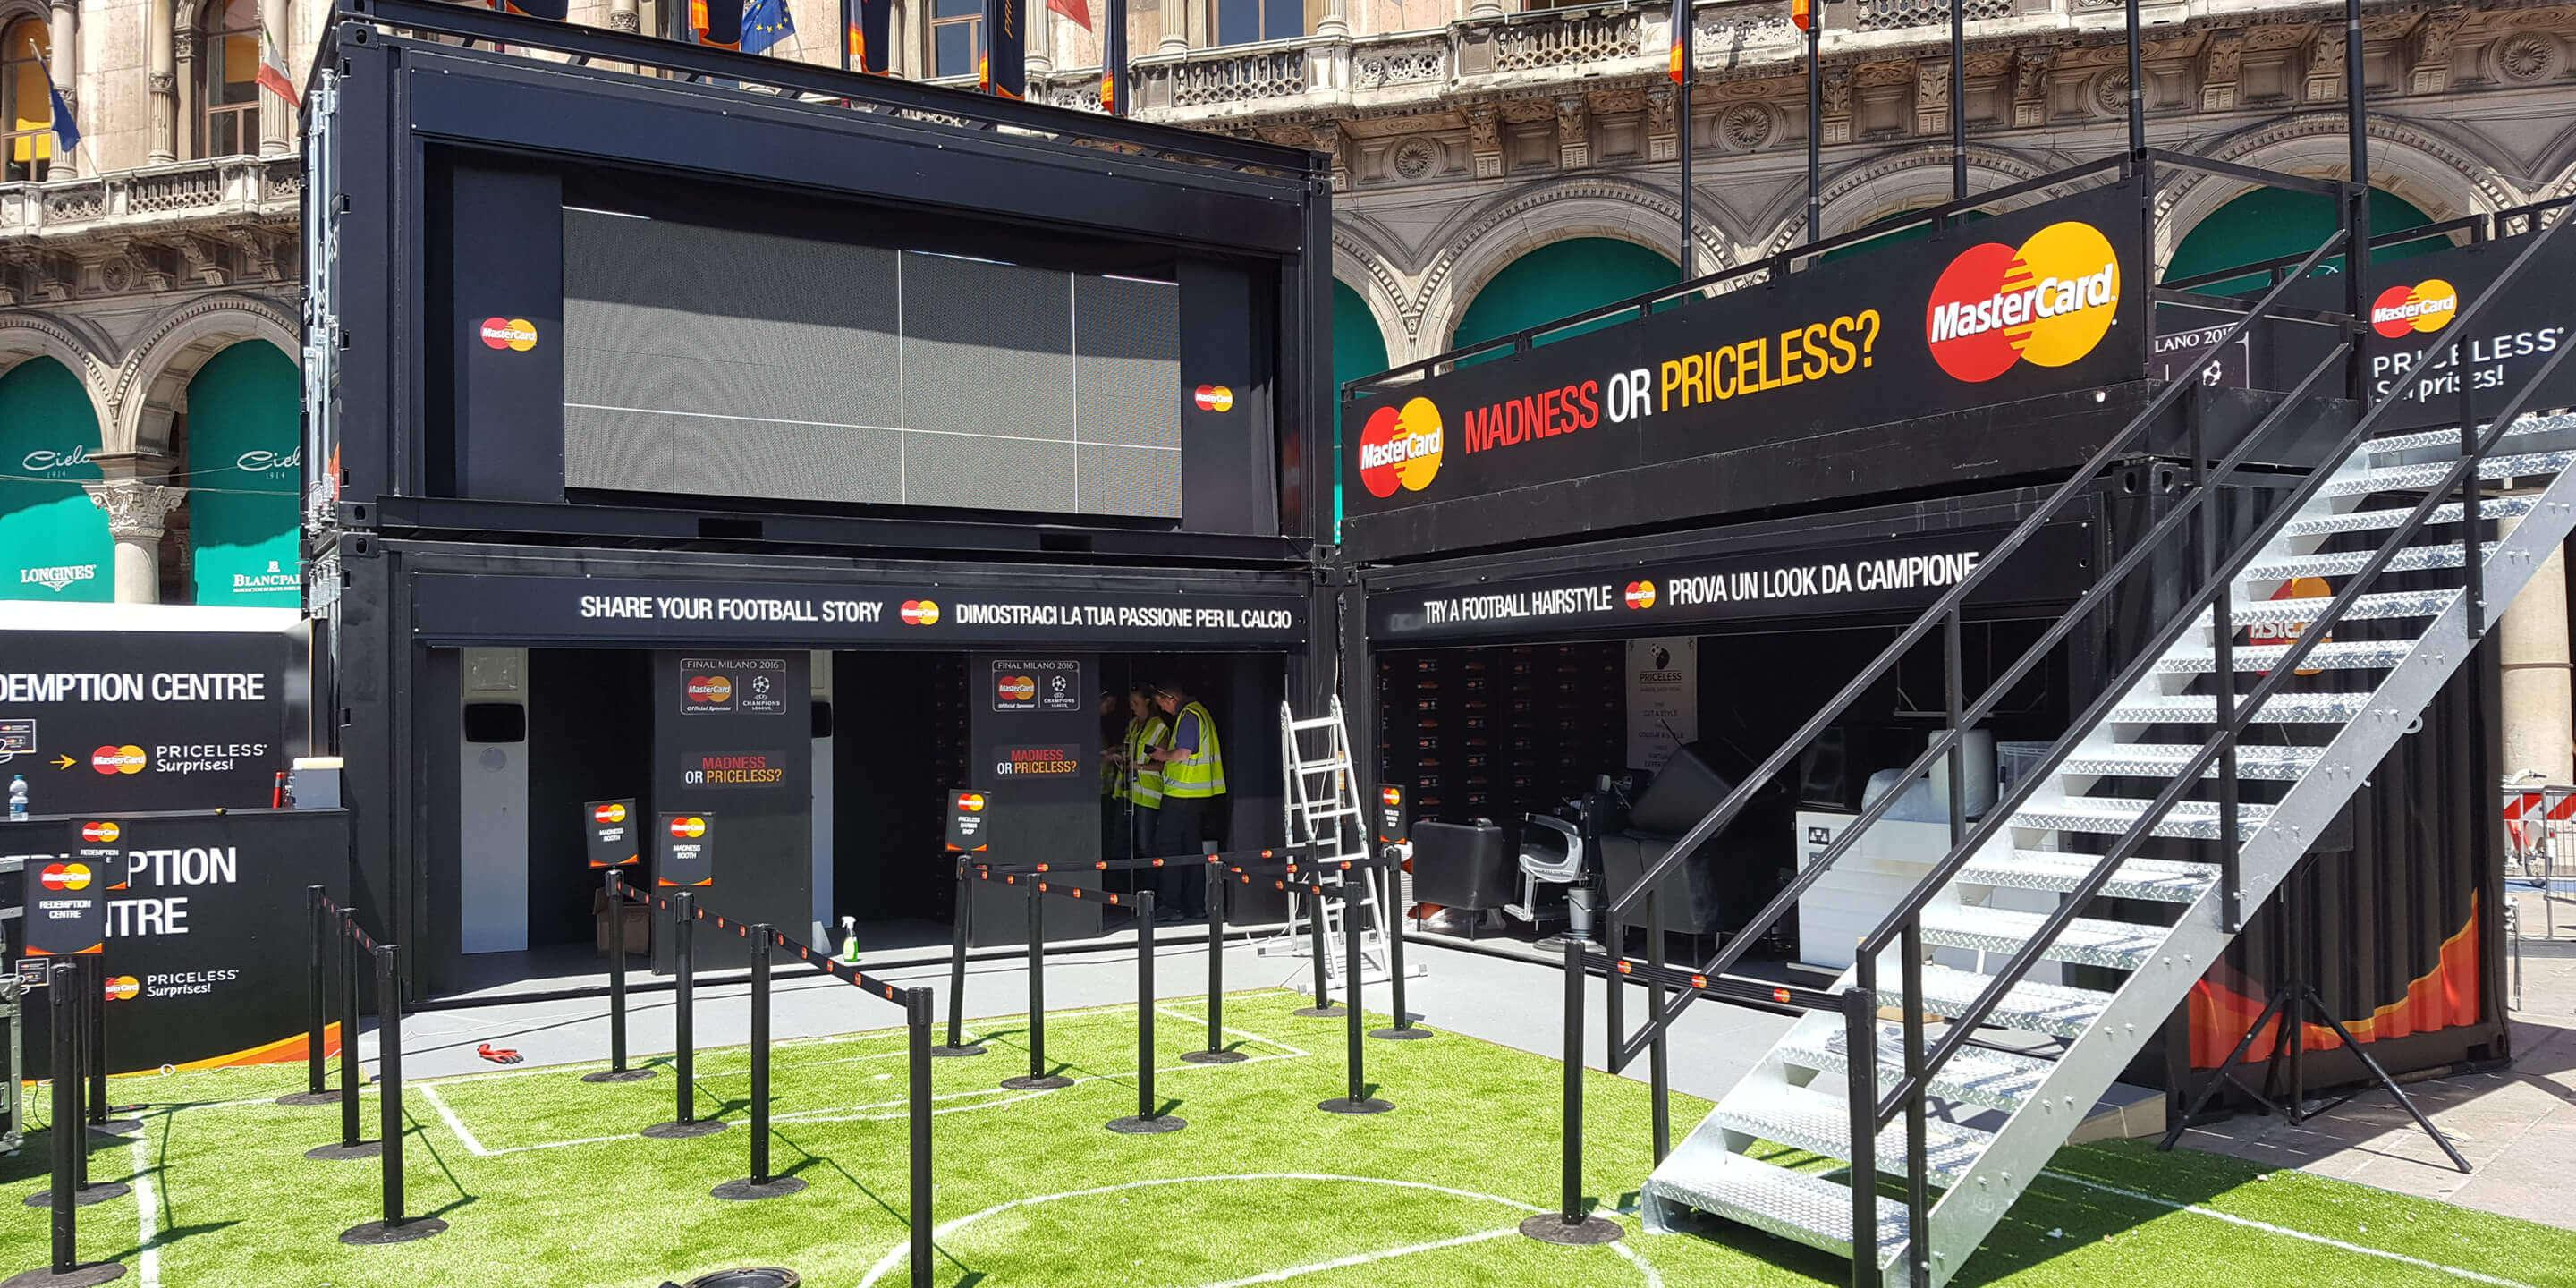 Event Shipping Containers: Statement for Mastercard UEFA Champions League Activation